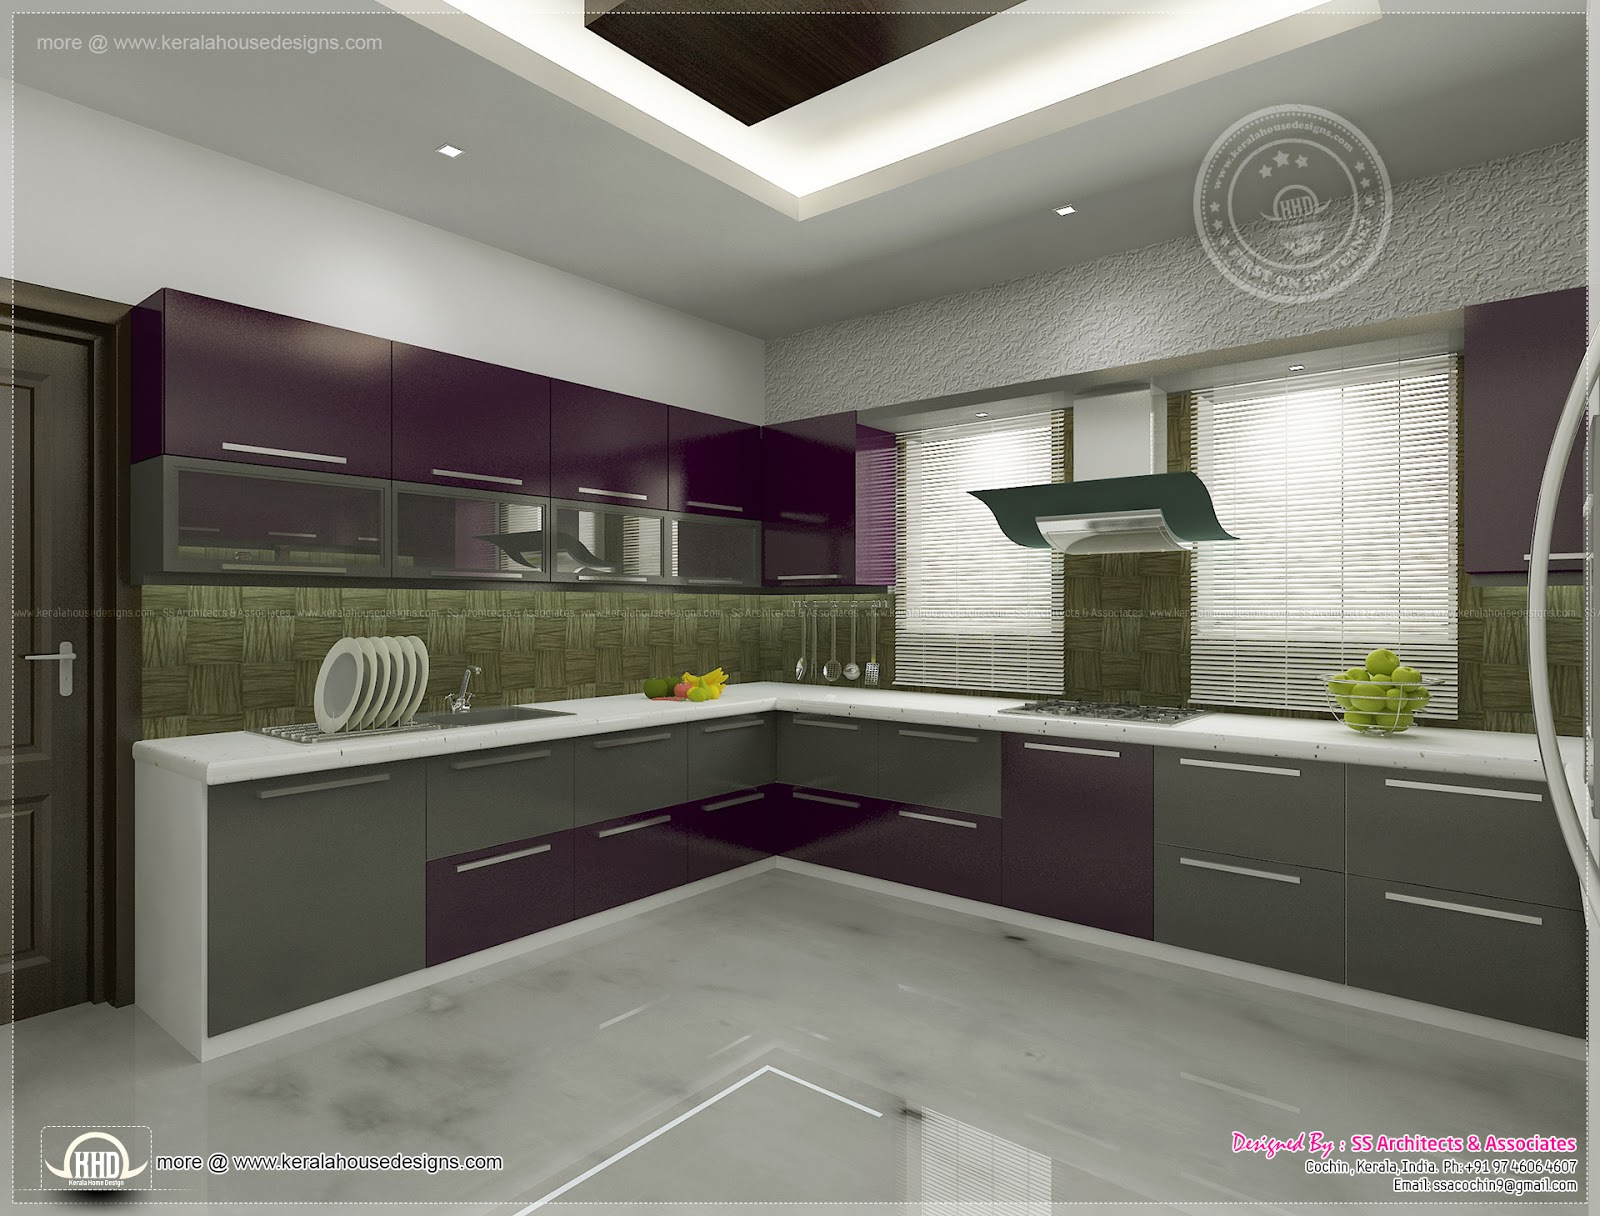 Kitchen interior views by ss architects cochin kerala for Interior designs photos for home